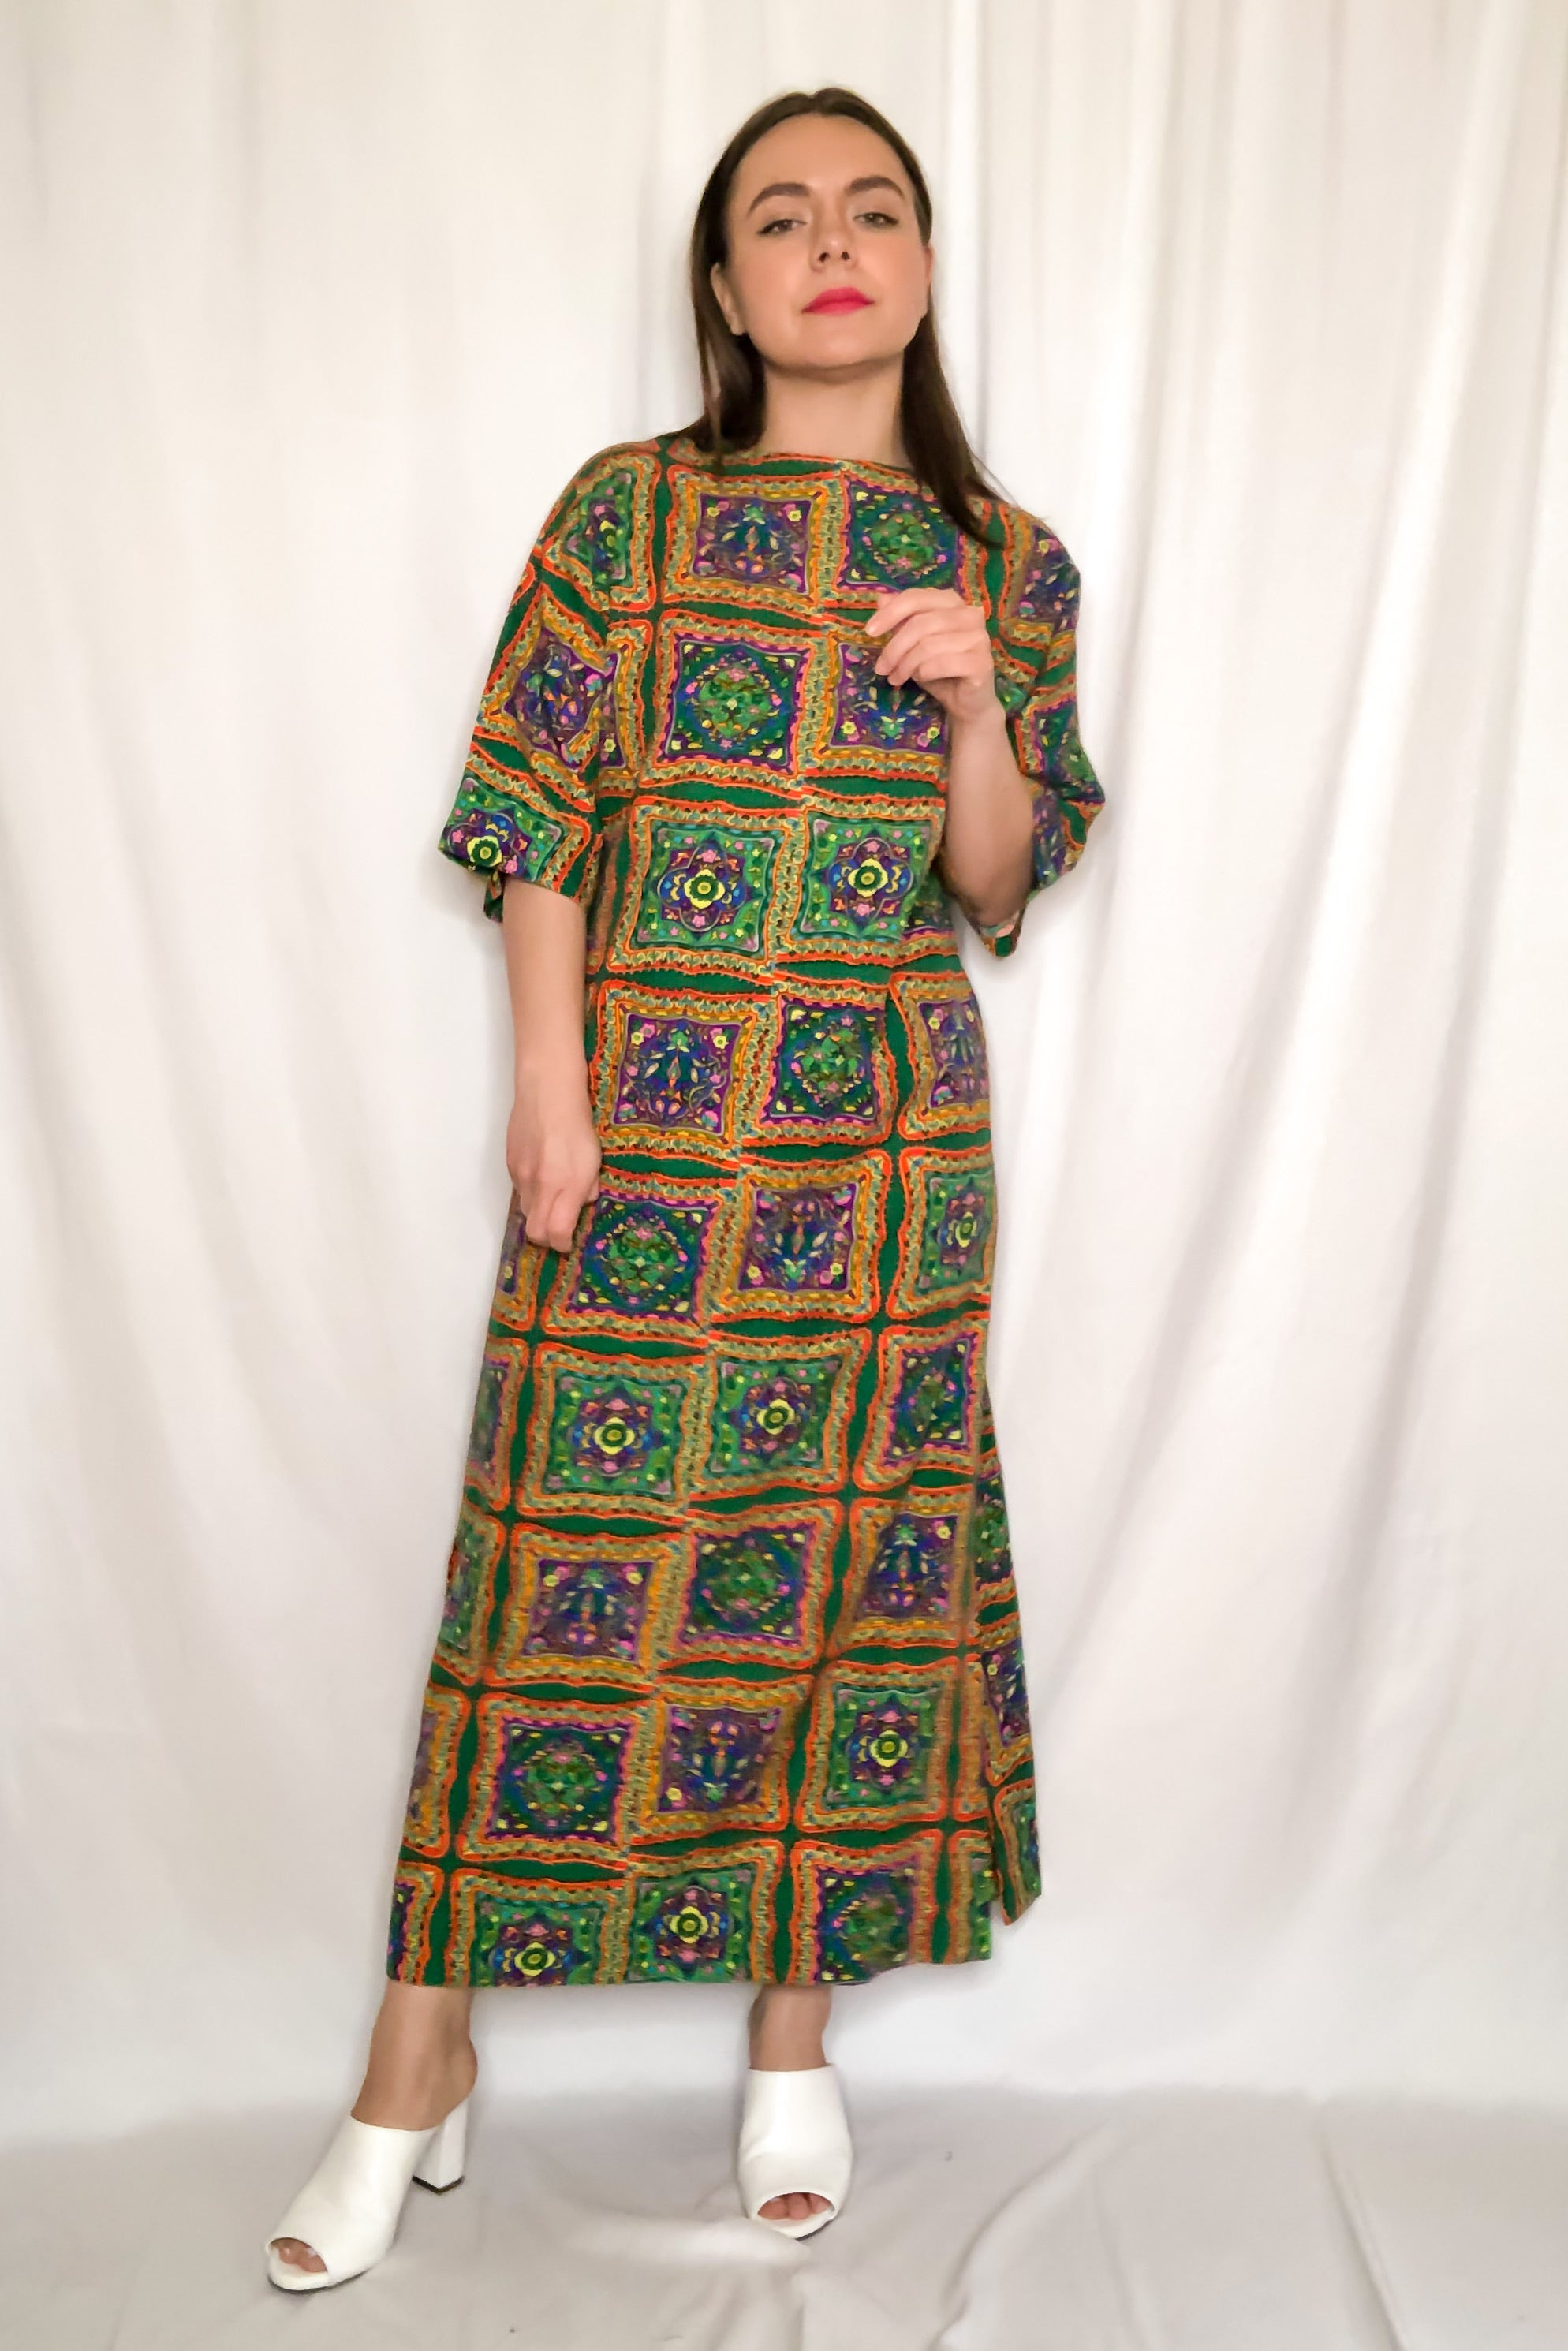 Vintage 60s-70s Patchwork Print Maxi Dress / S-L